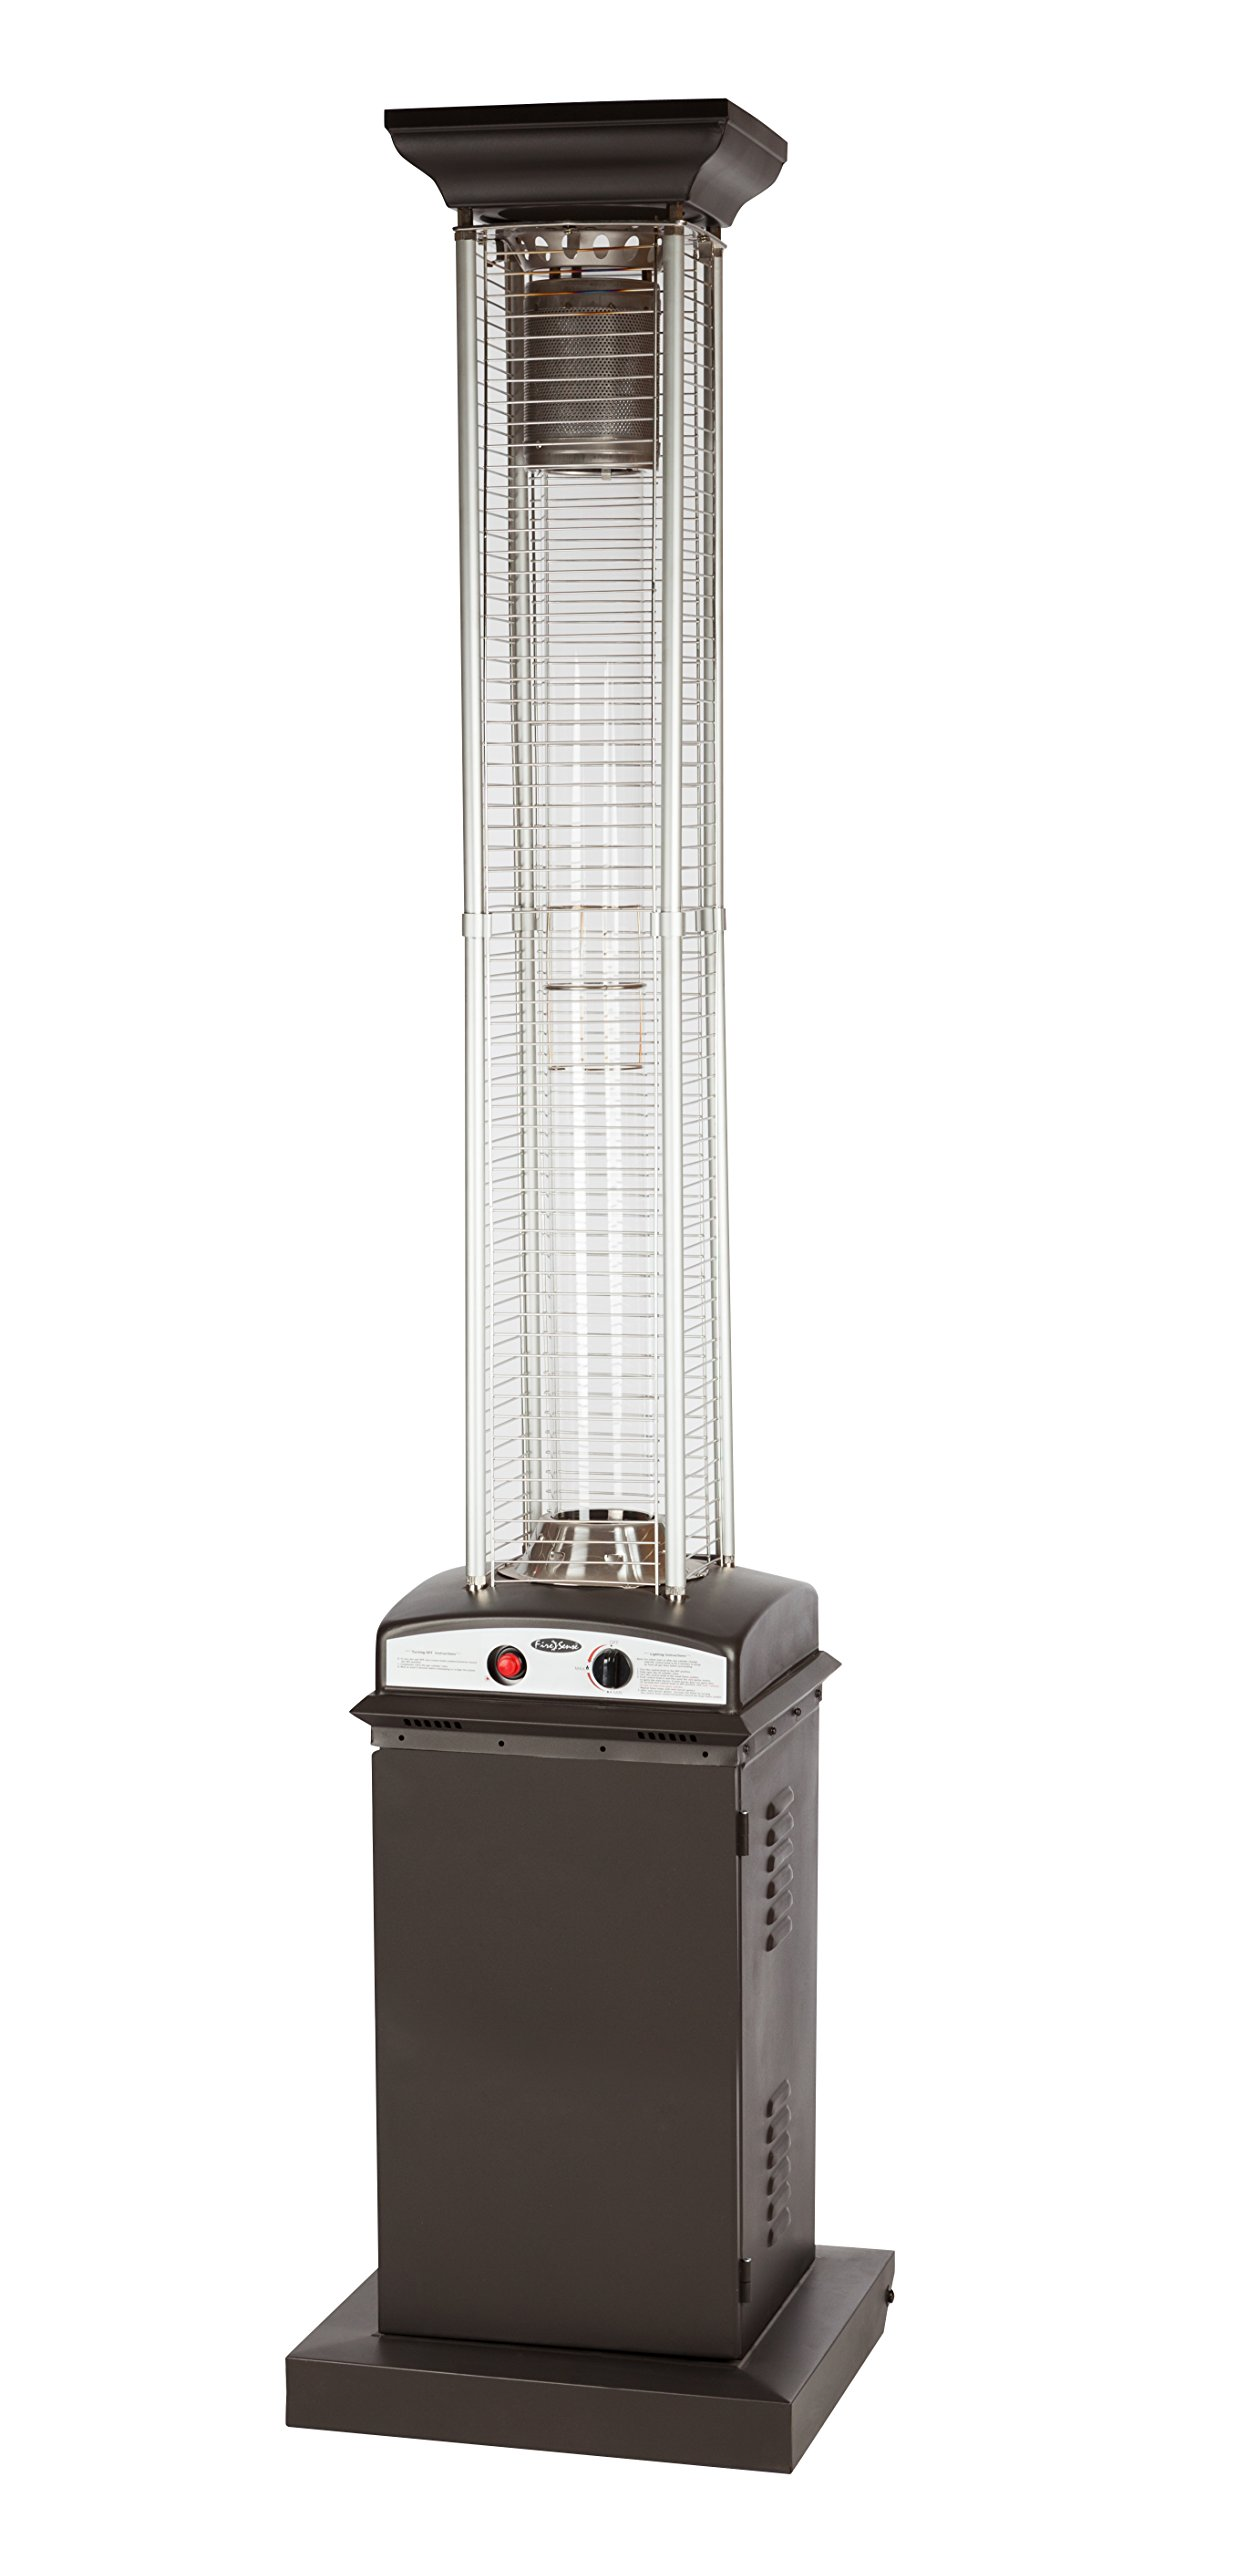 stand sense patio mjjsuab co fire up patrofi heater veloclub